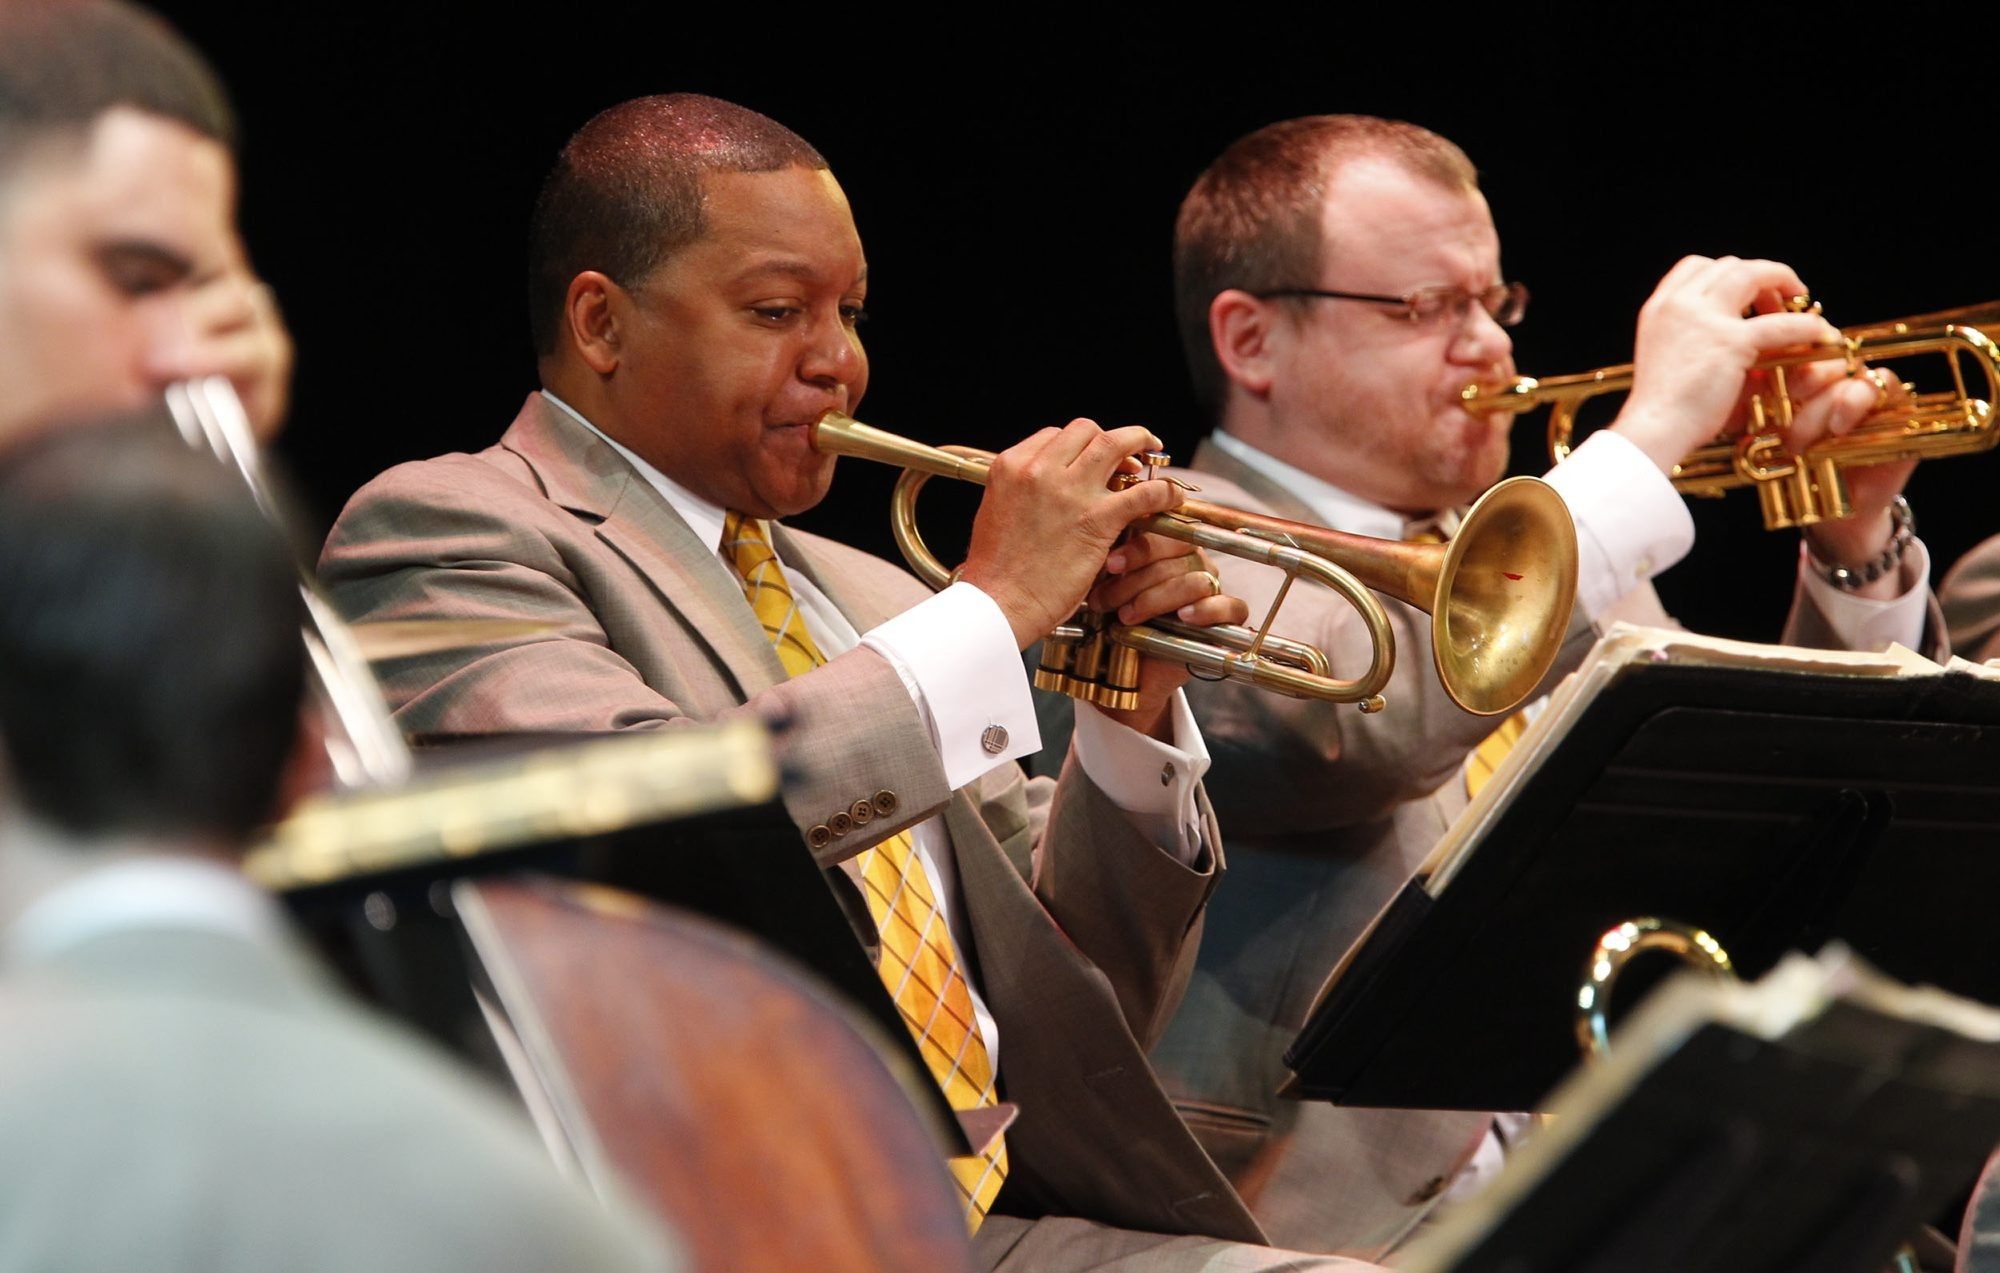 Wynton Marsalis perform with the Lincoln Center Orchestra as part of Artpark's 40th anniversary season, on Monday, June 24, 2013.